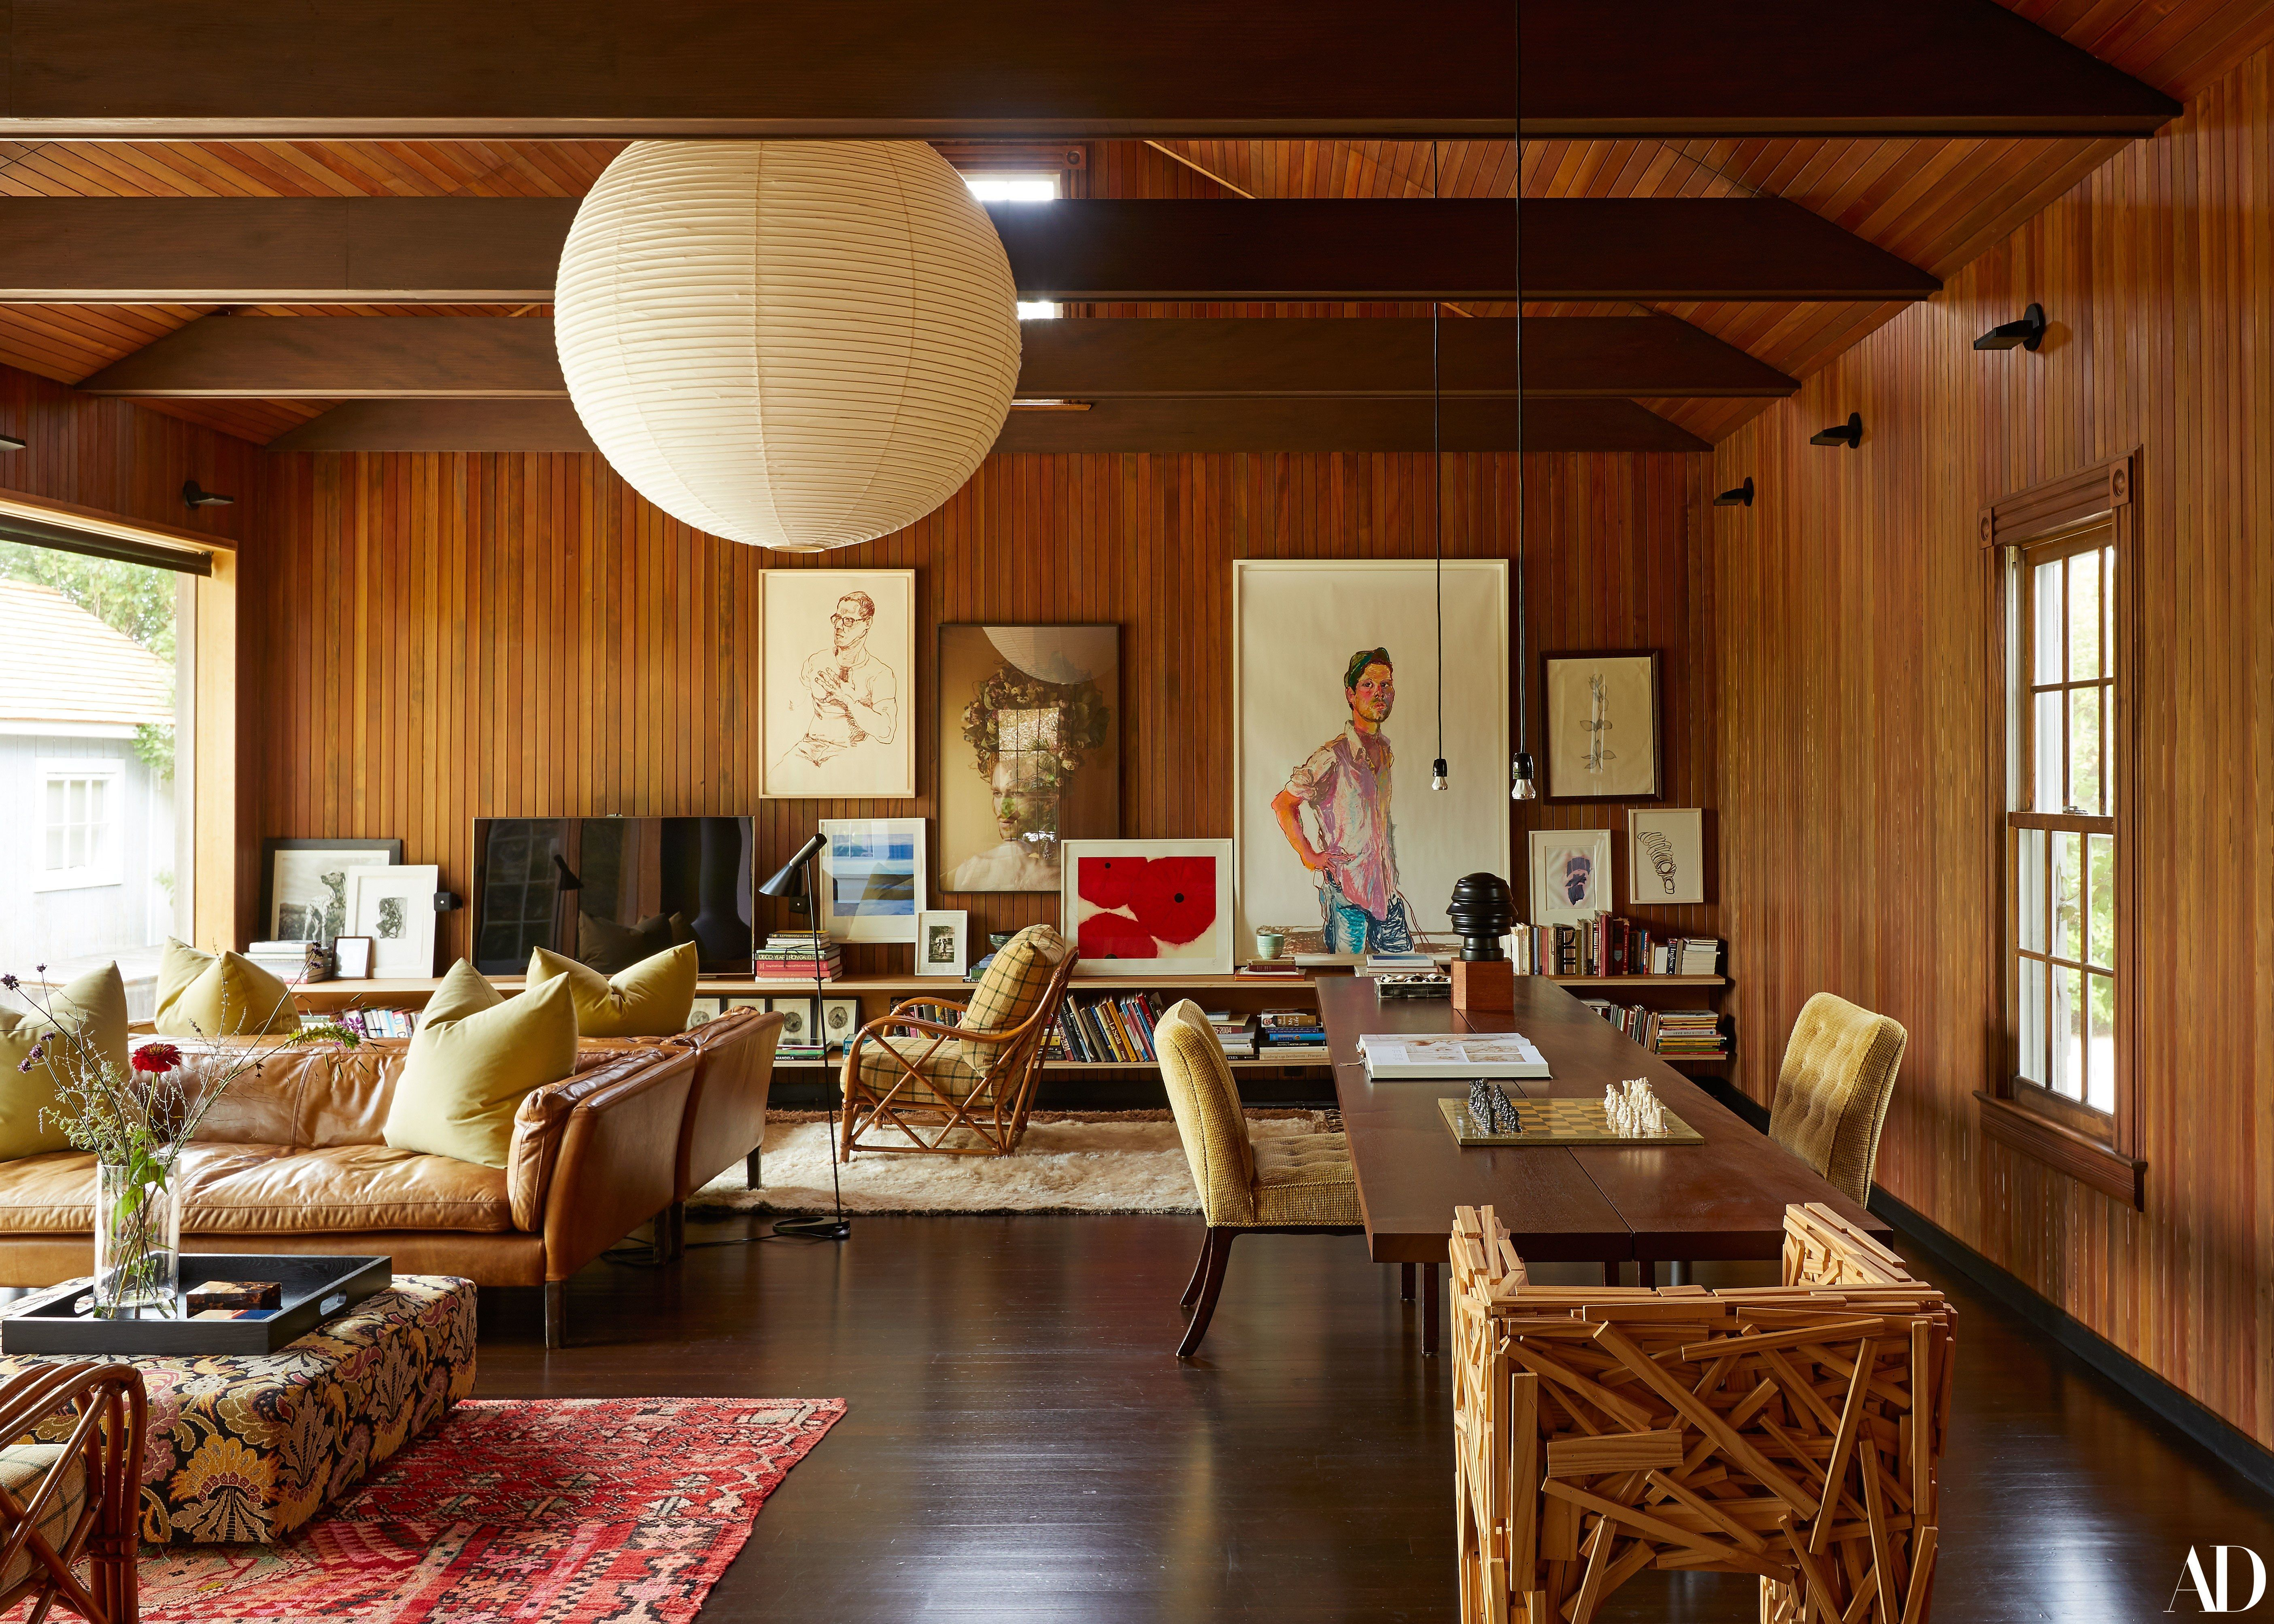 An Understated Beach House That Artfully Breaks Convention in the Hamptons -  An Understated Beach House That Artfully Breaks Convention in the Hamptons Photos | Architectural D - #Artfully #Beach #BeachHouseInteriors #BeachHouses #BohemianDecor #Breaks #Convention #Cottages #EclecticDecor #Hamptons #House #IndustrialFurniture #Understated